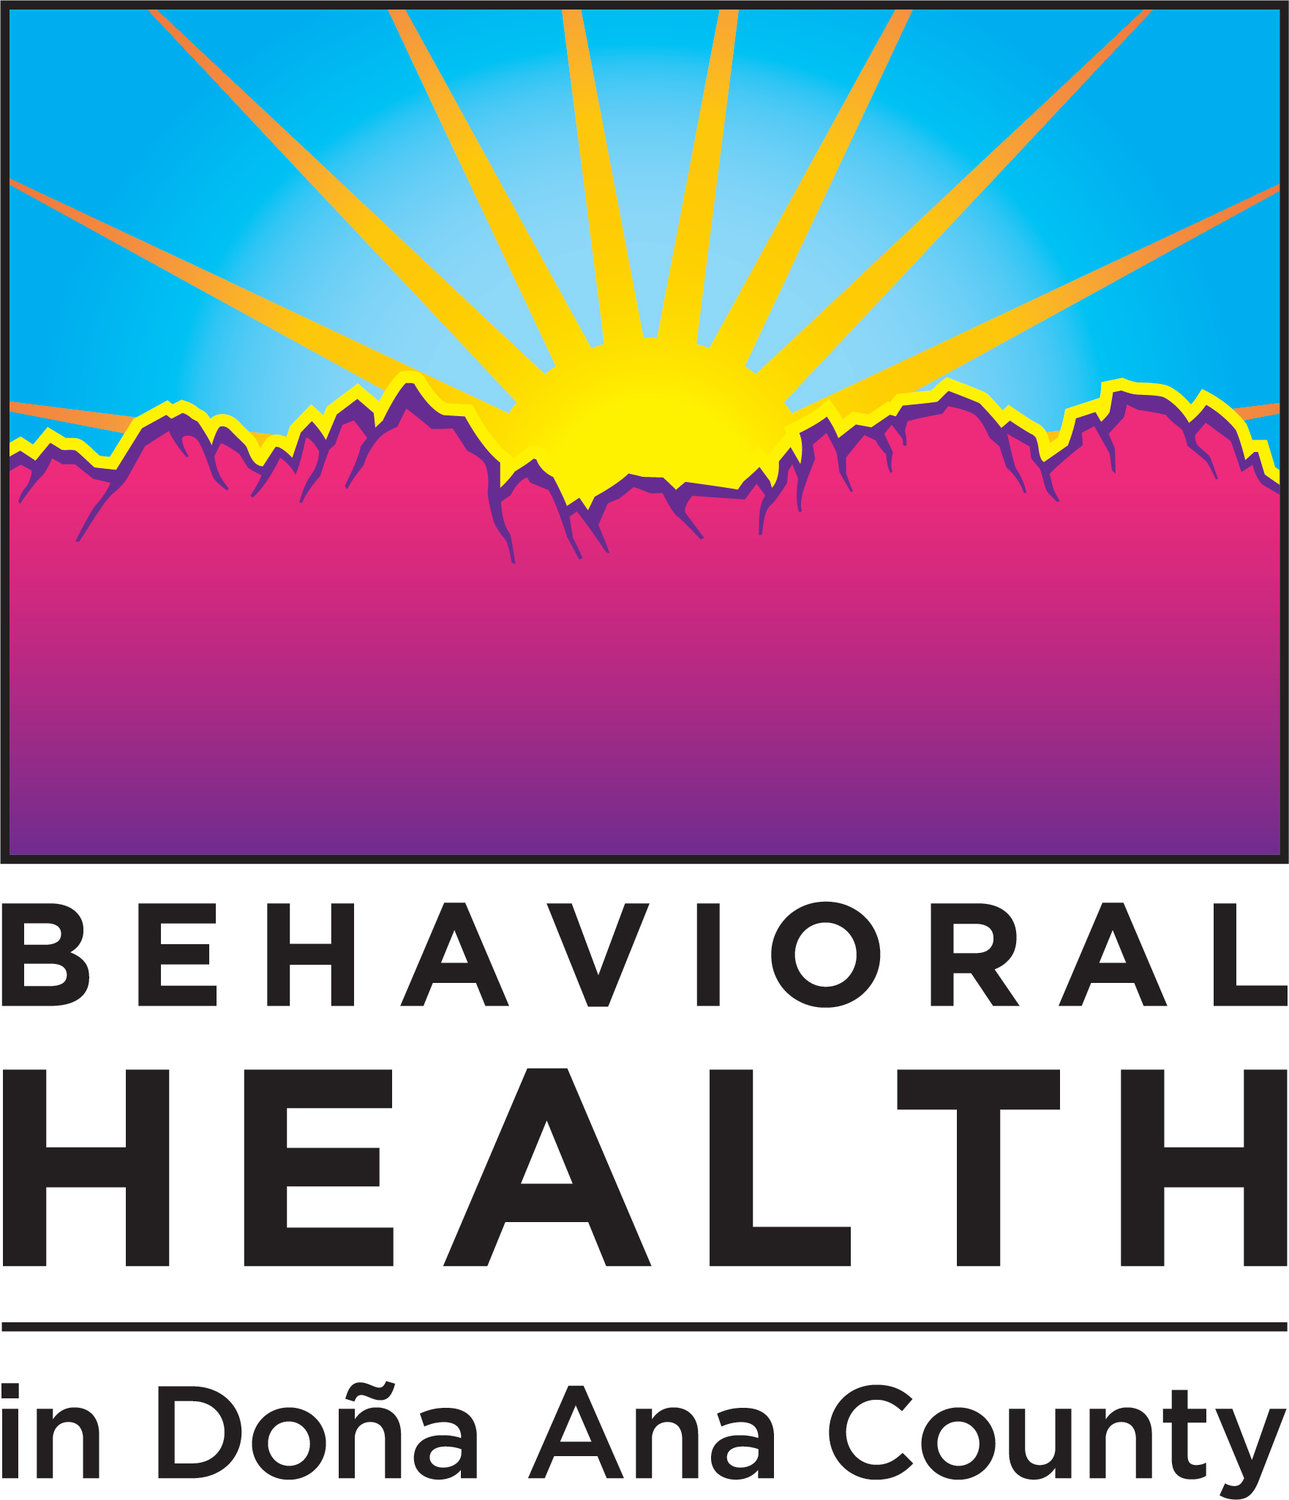 Behavioral Health in Doña Ana County